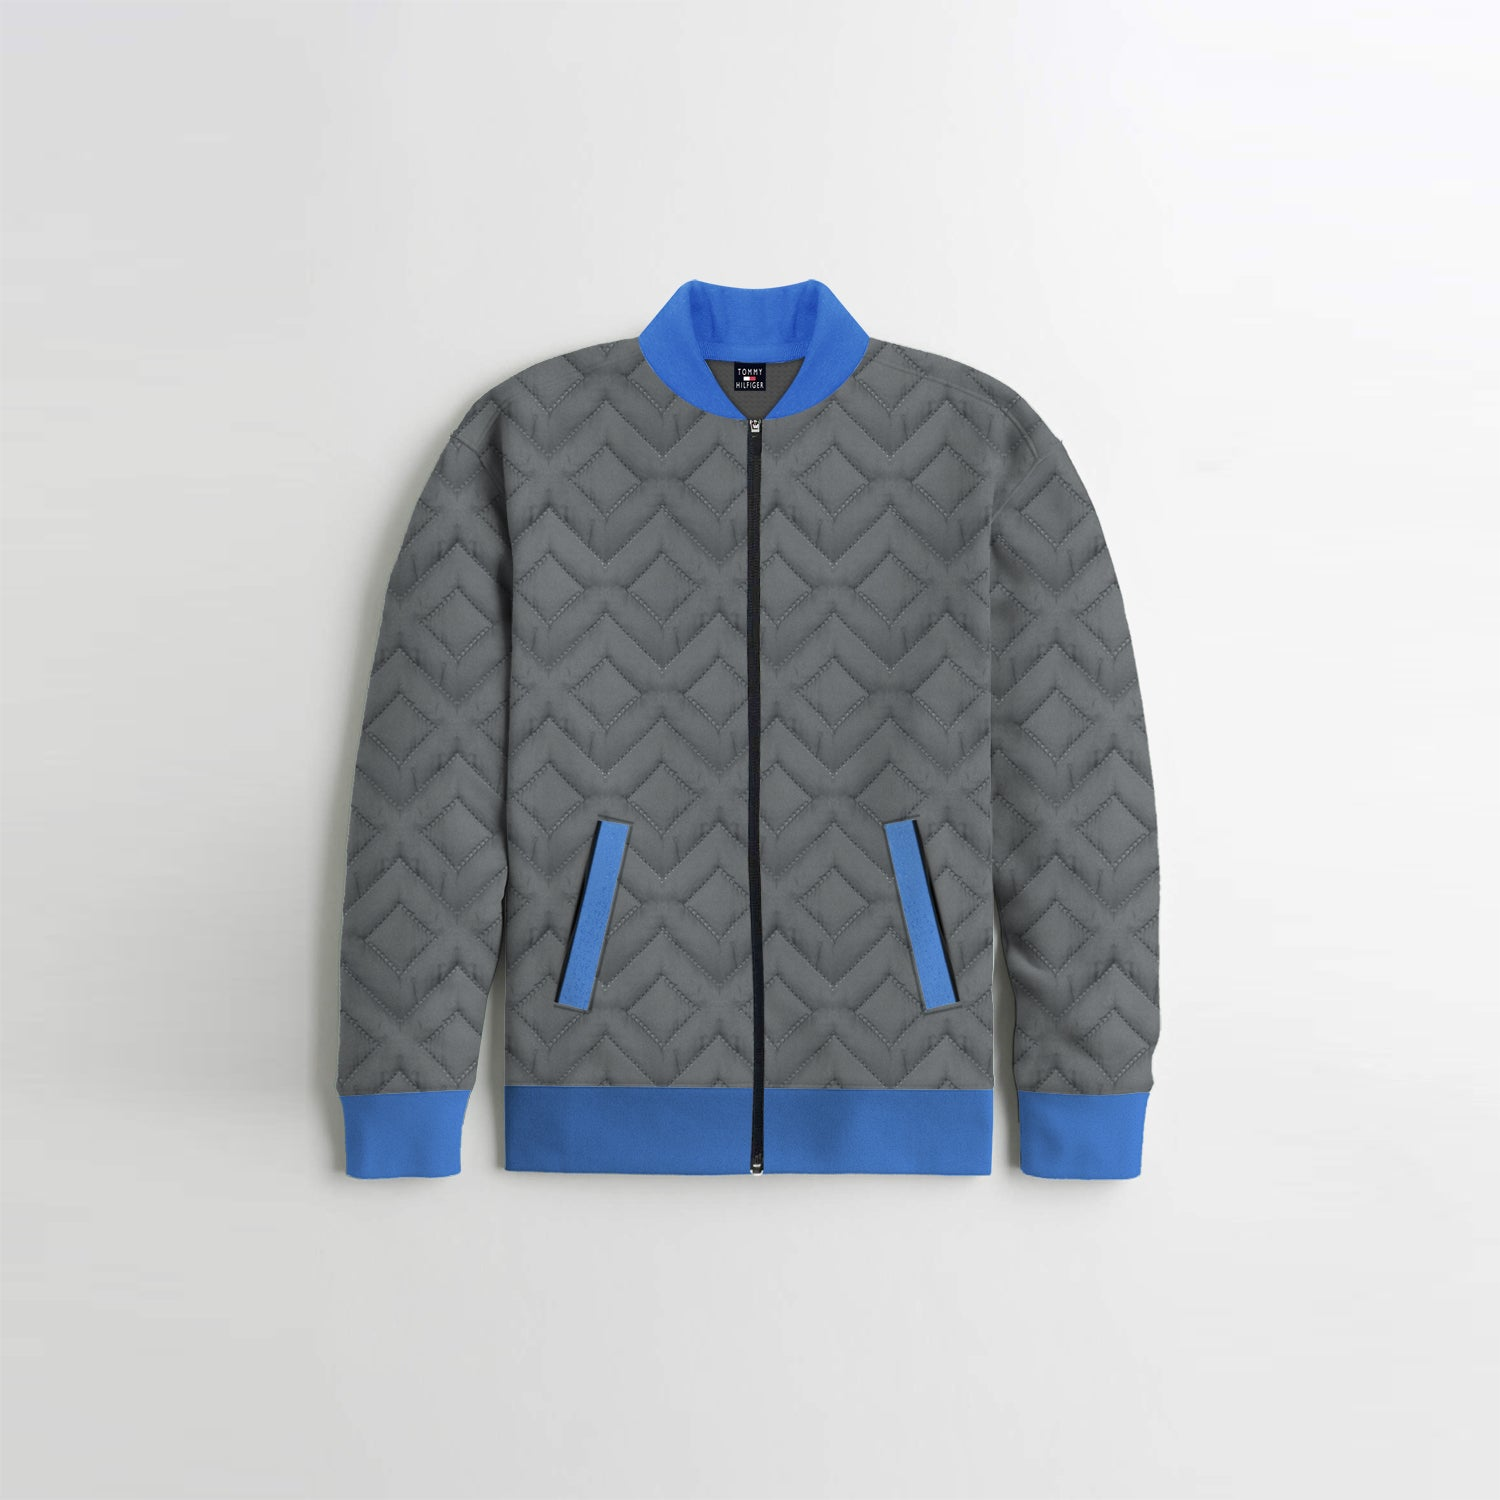 TH Quilted Zipper Baseball Jacket For Kids-Slate Grey with Blue-BE13405